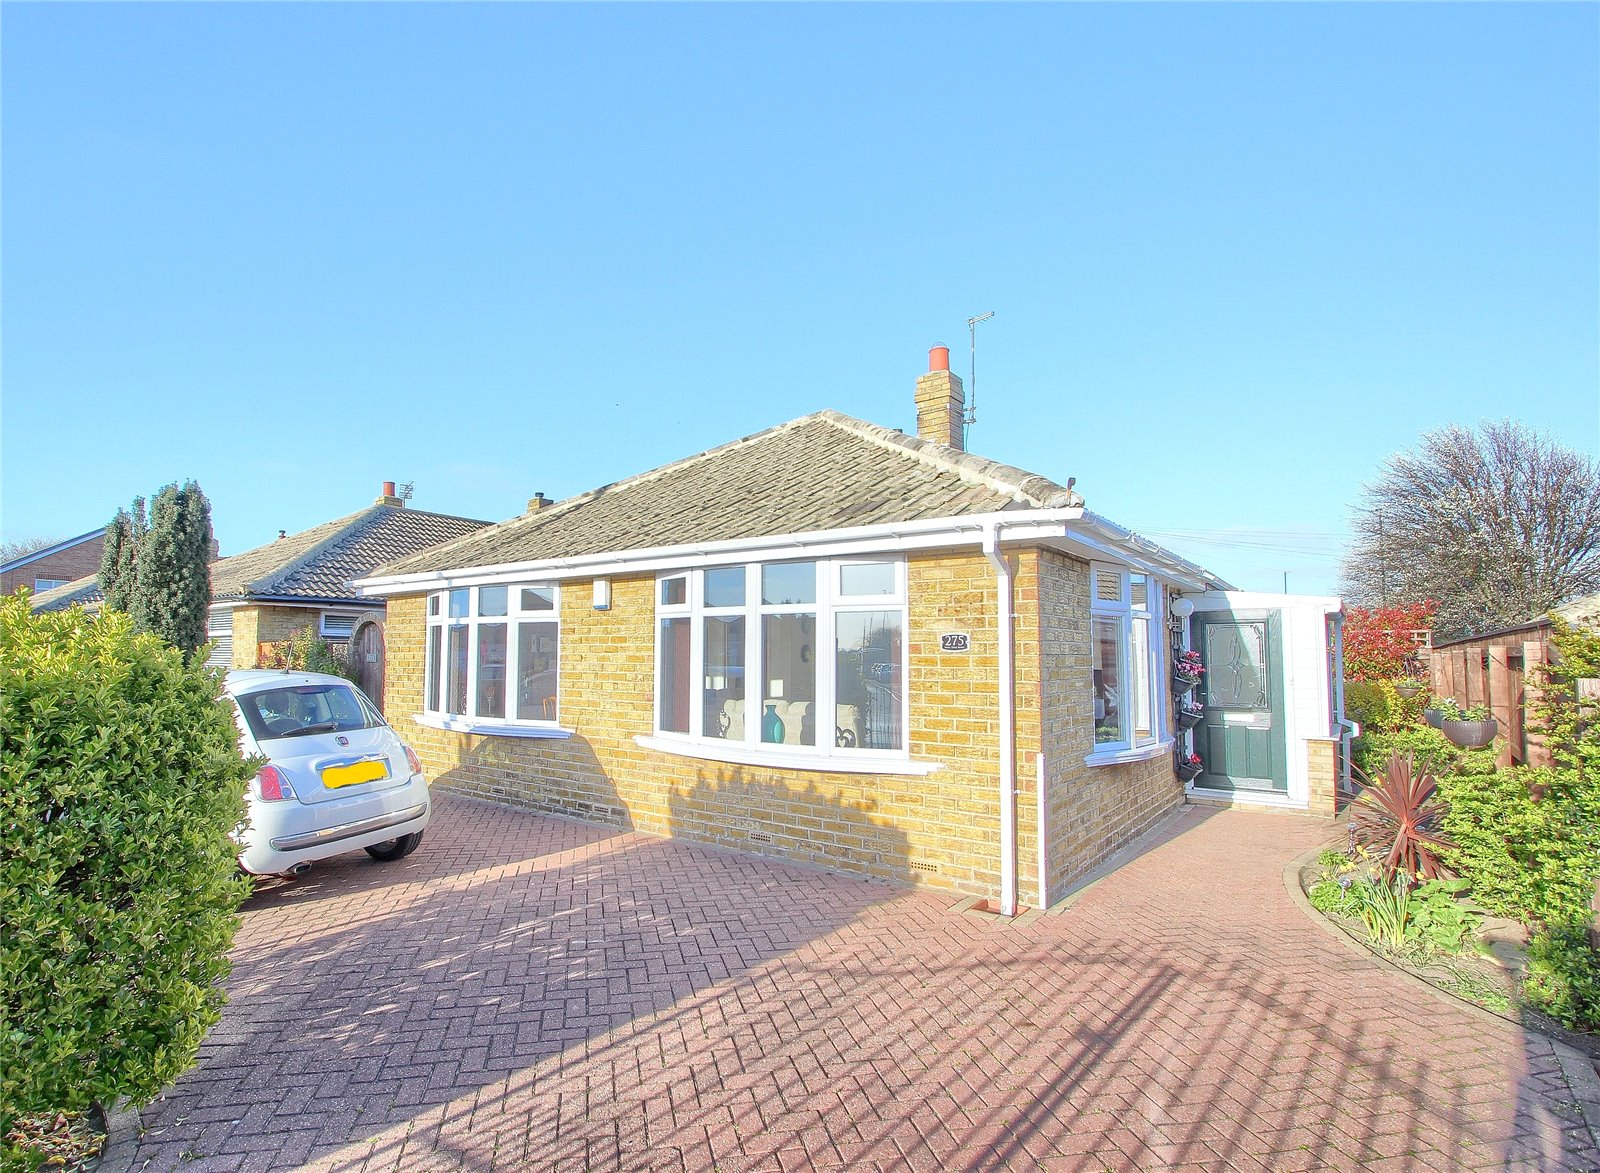 3 bed bungalow for sale in West Dyke Road, Redcar - Property Image 1